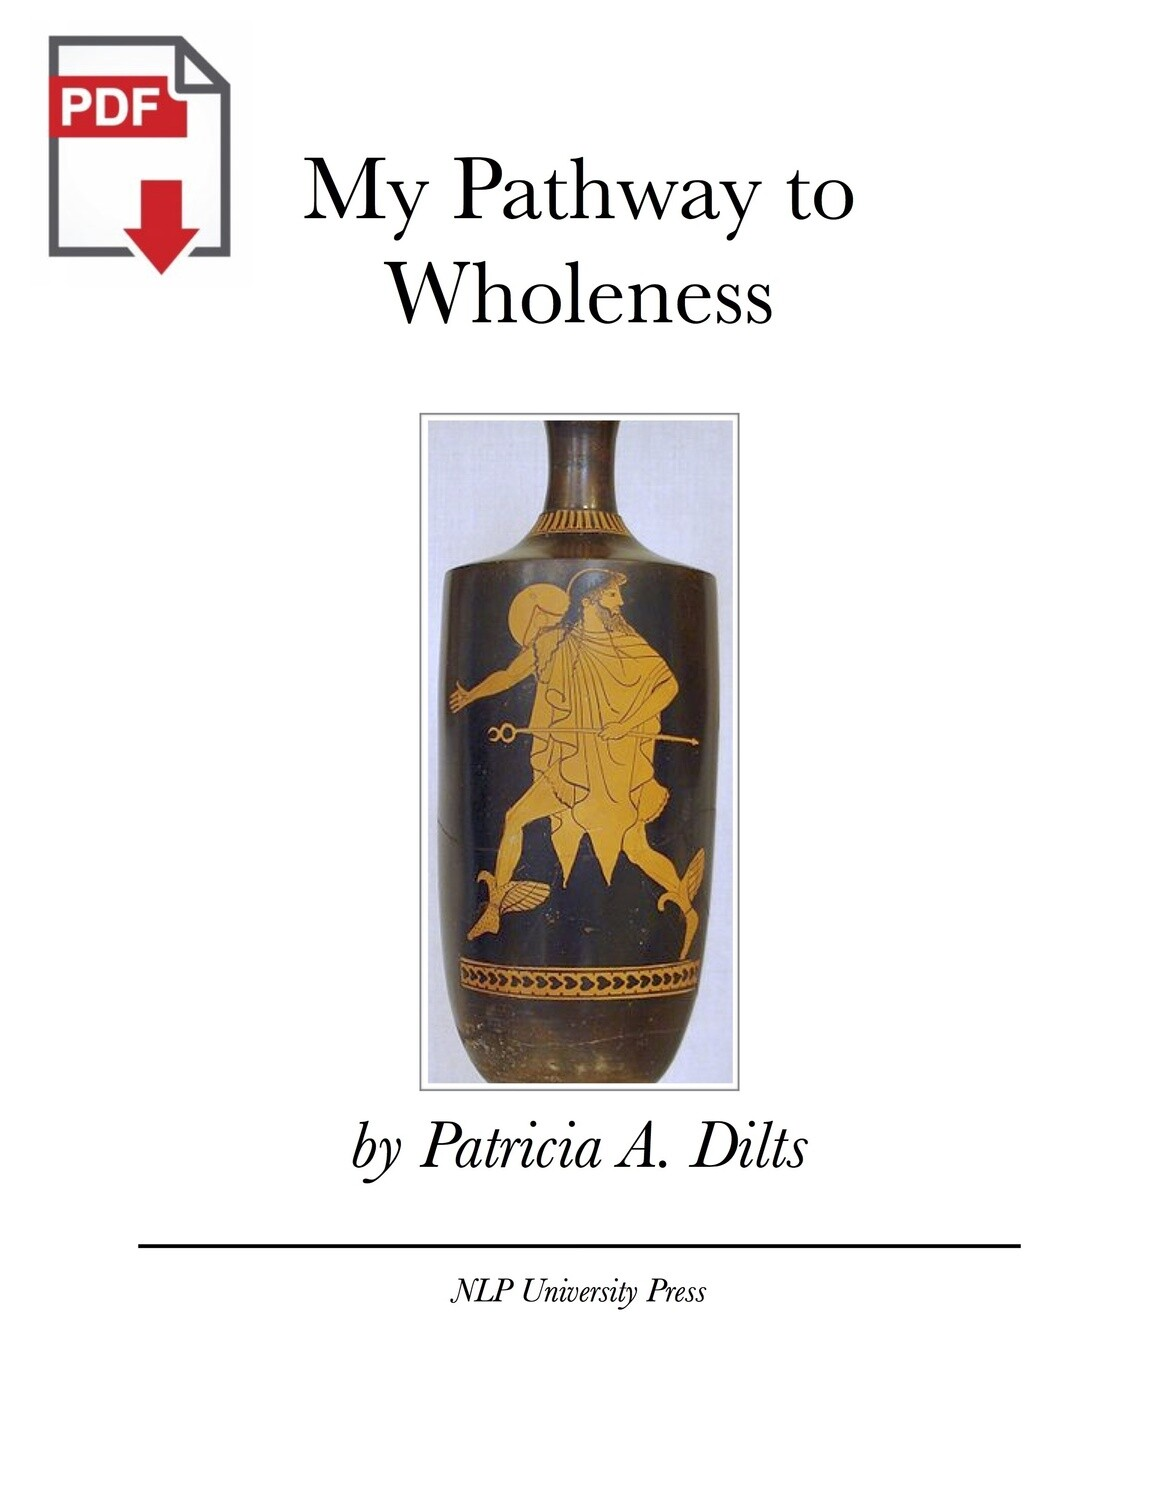 My Pathway to Wholeness by Patricia A. Dilts [PDF]